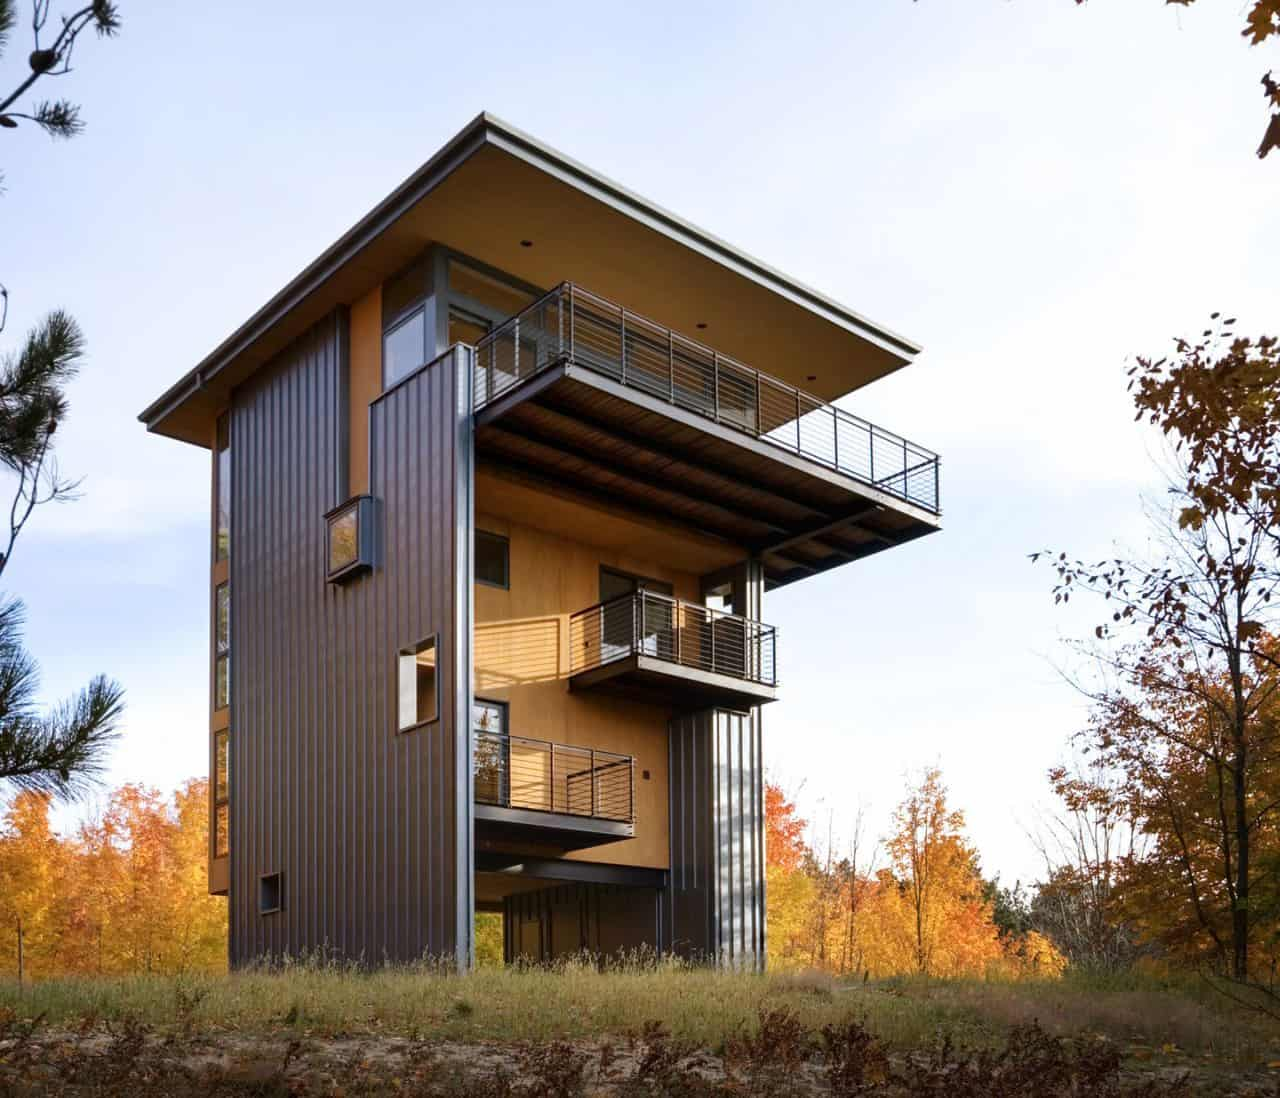 4 Storey Tall House Reaches Above The Forest To See The Lake